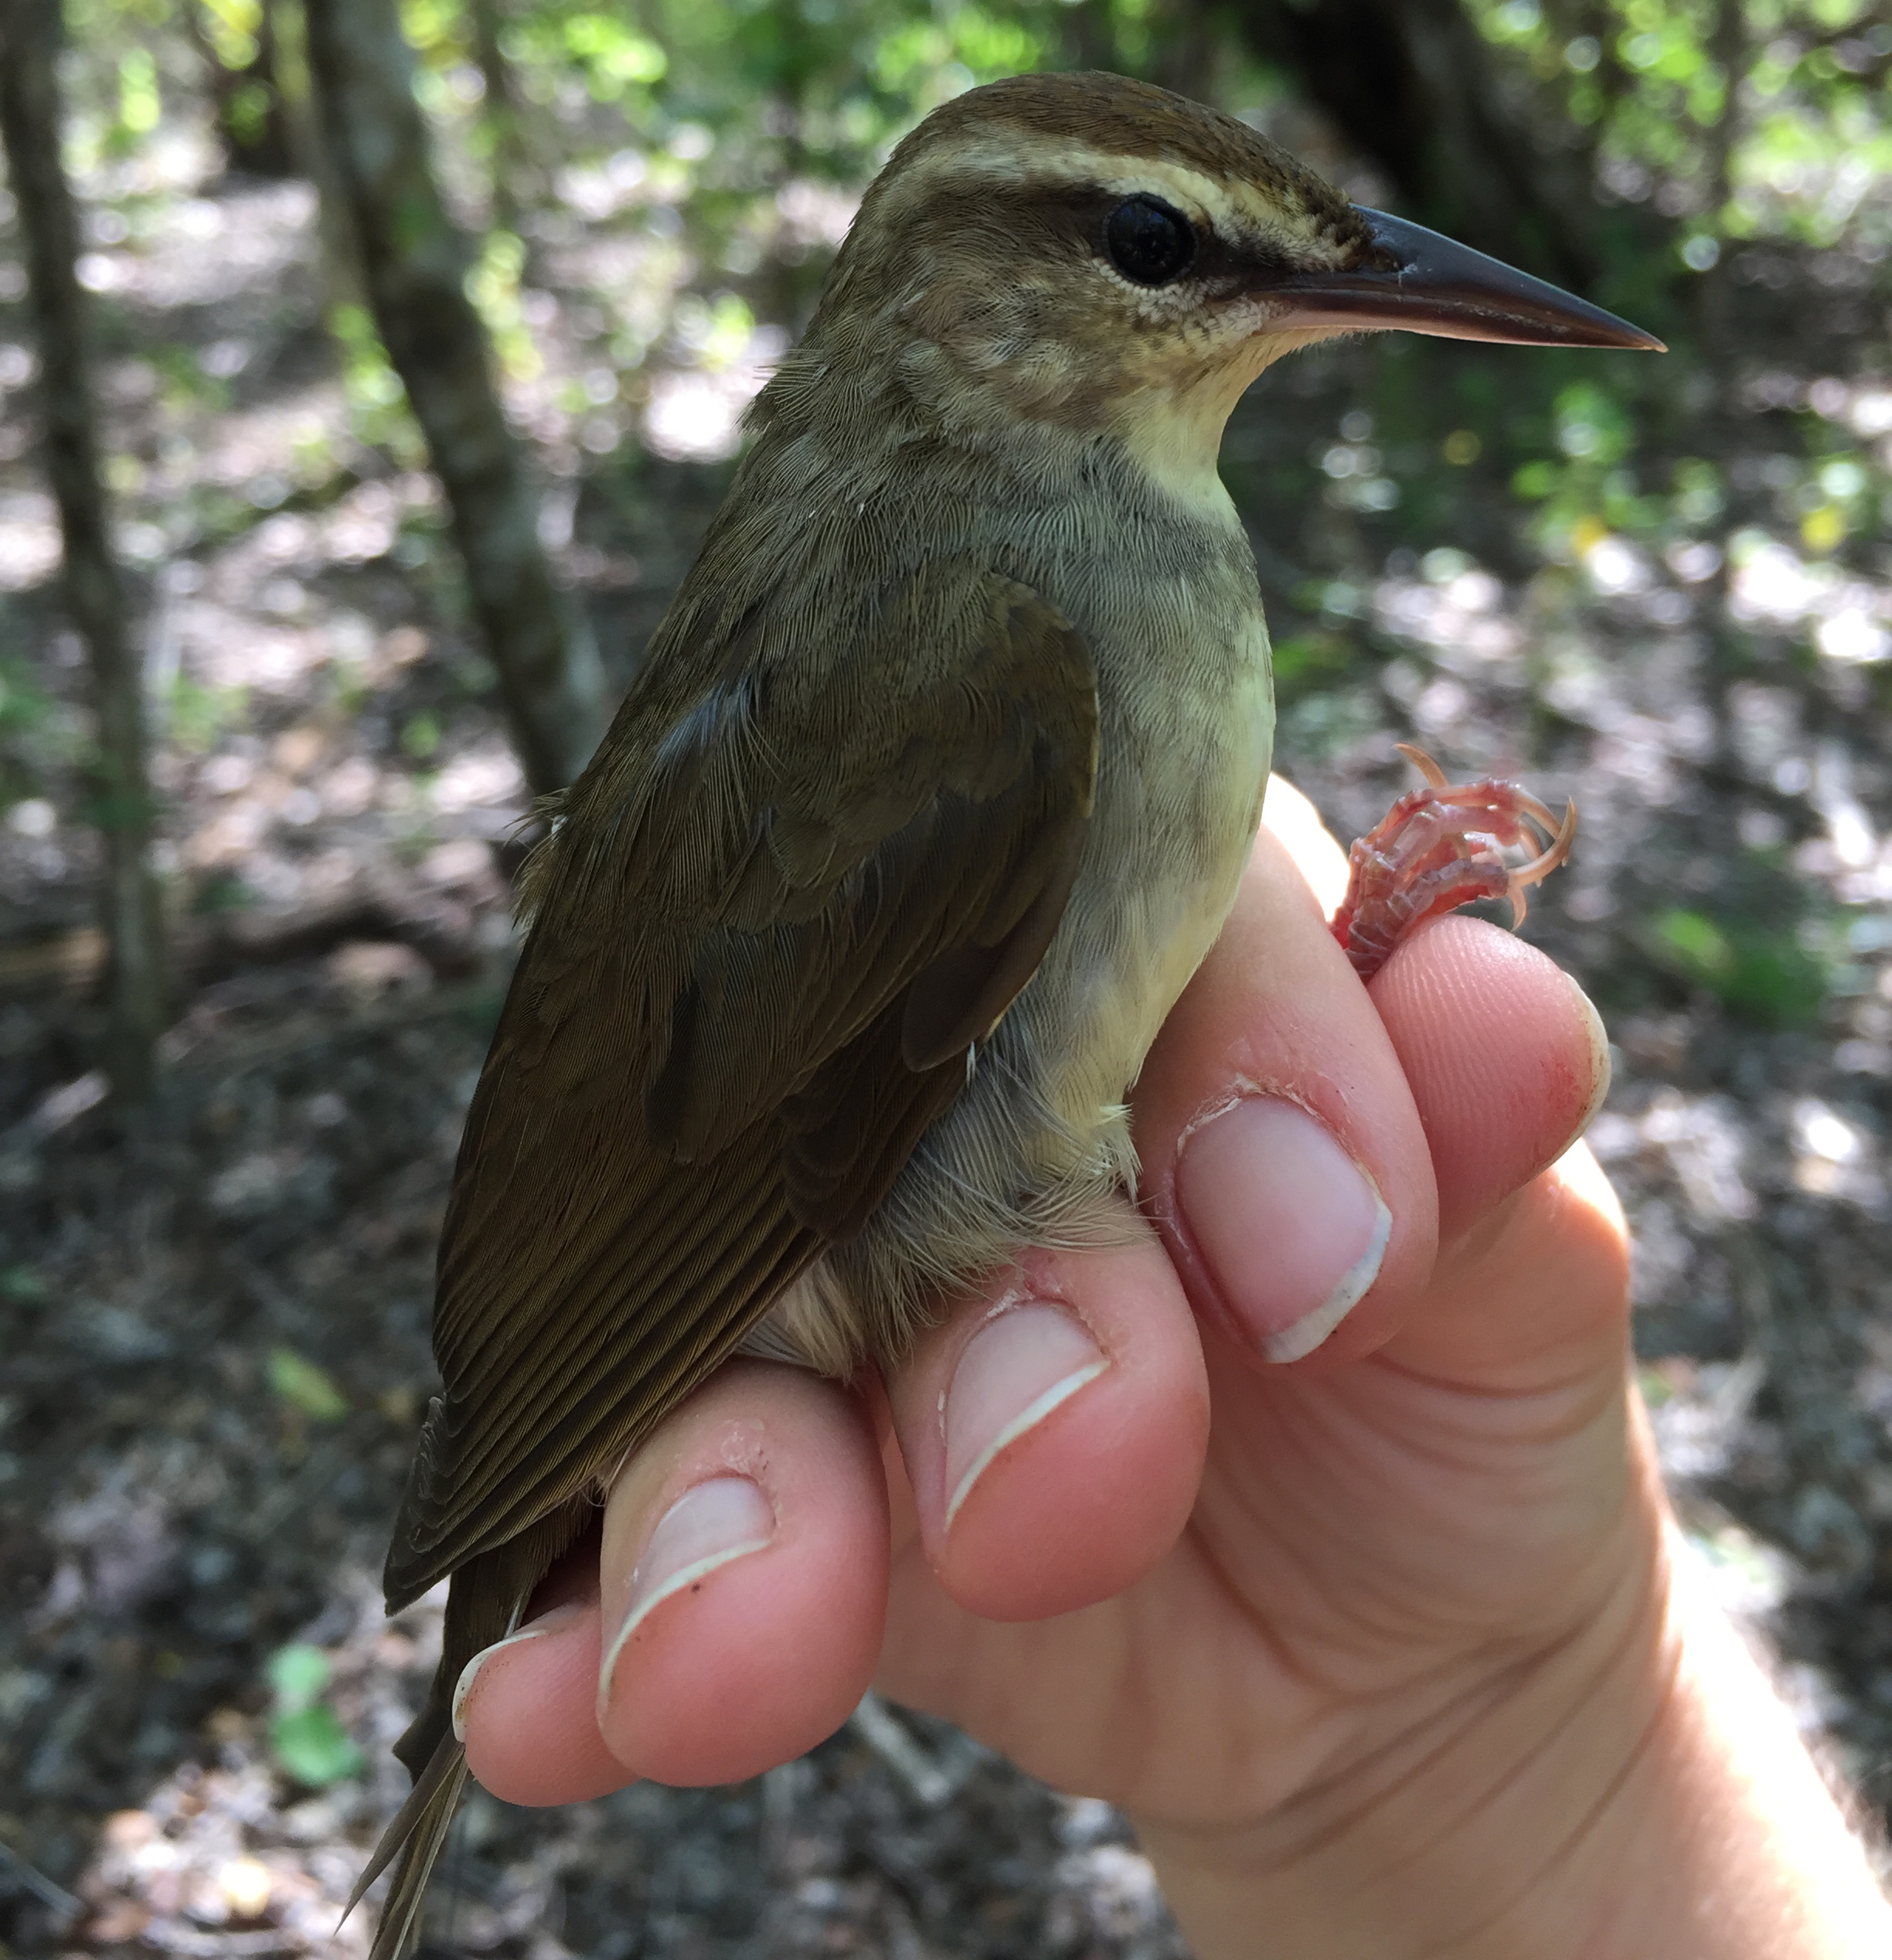 Swainson's warbler bird in someone's hand